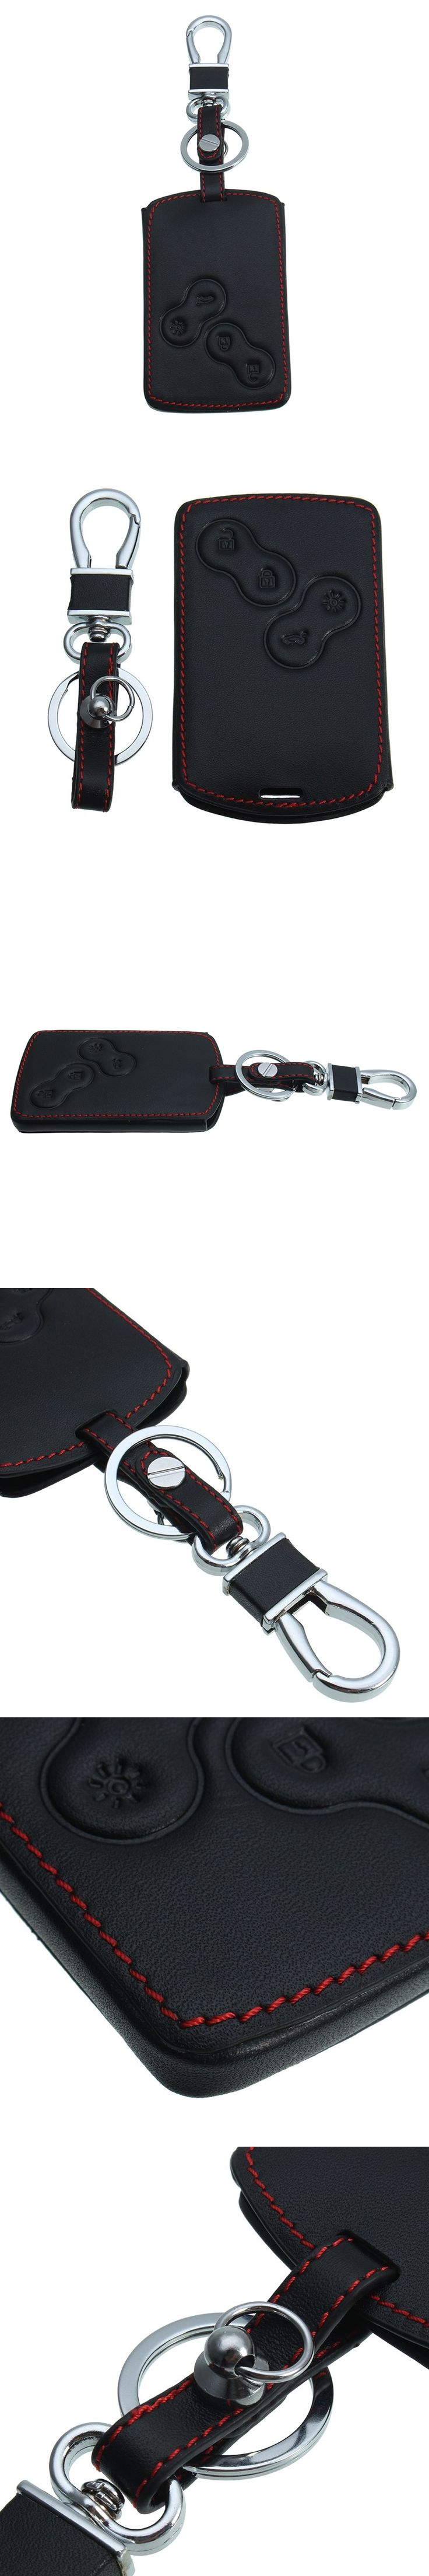 New Leather Key Case Cover Holder with Keychain For Renault Koleos Laguna 2 3 Megane 1 2 3 Sandero Scenic Captur Clio Duster